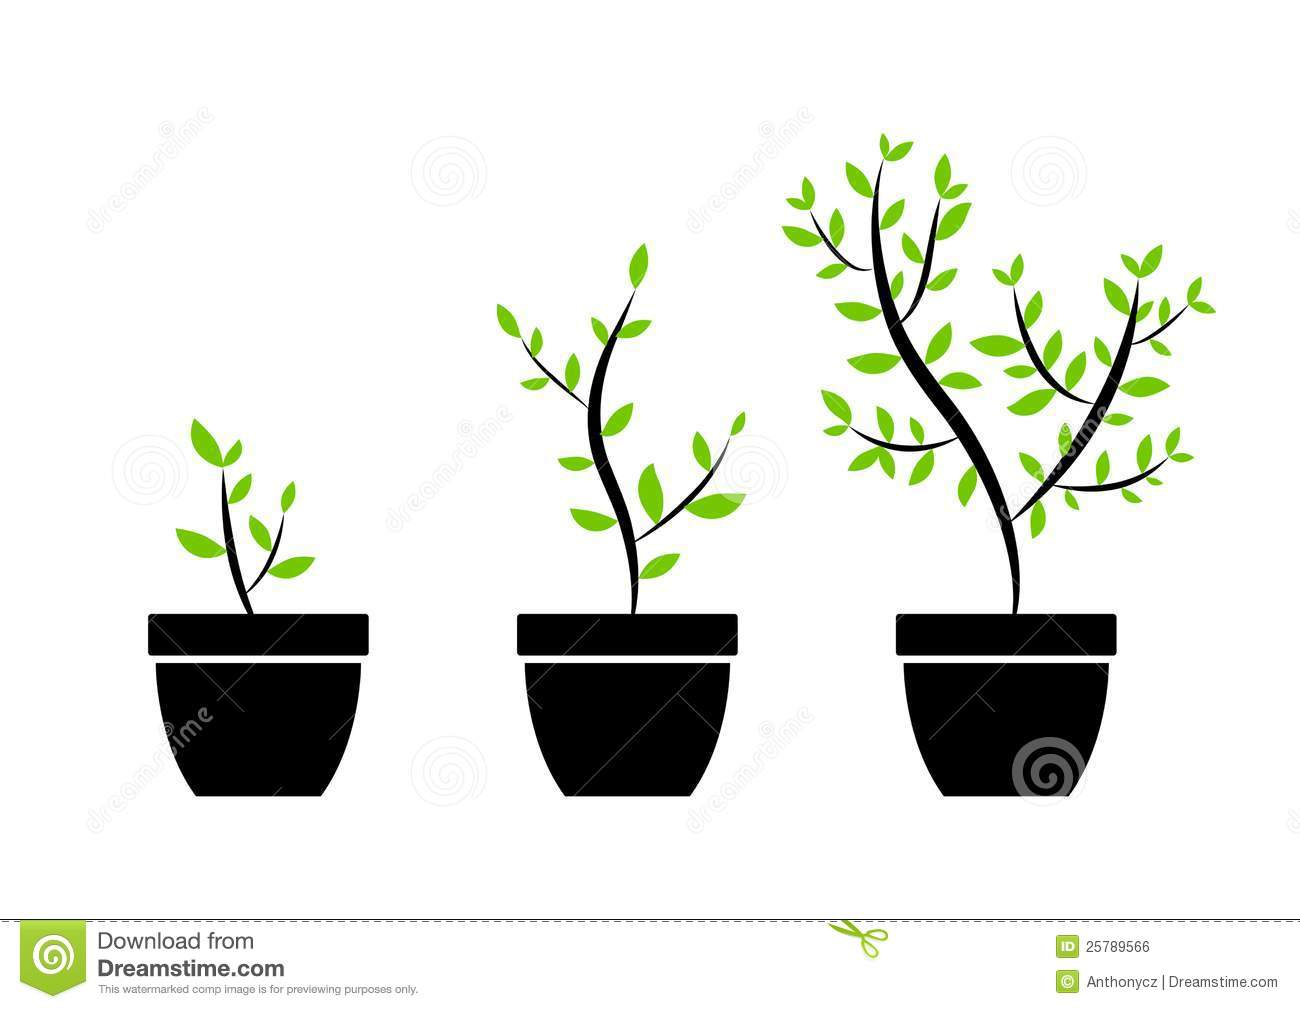 Plant Icons Royalty Free Stock Image - Image: 25789566